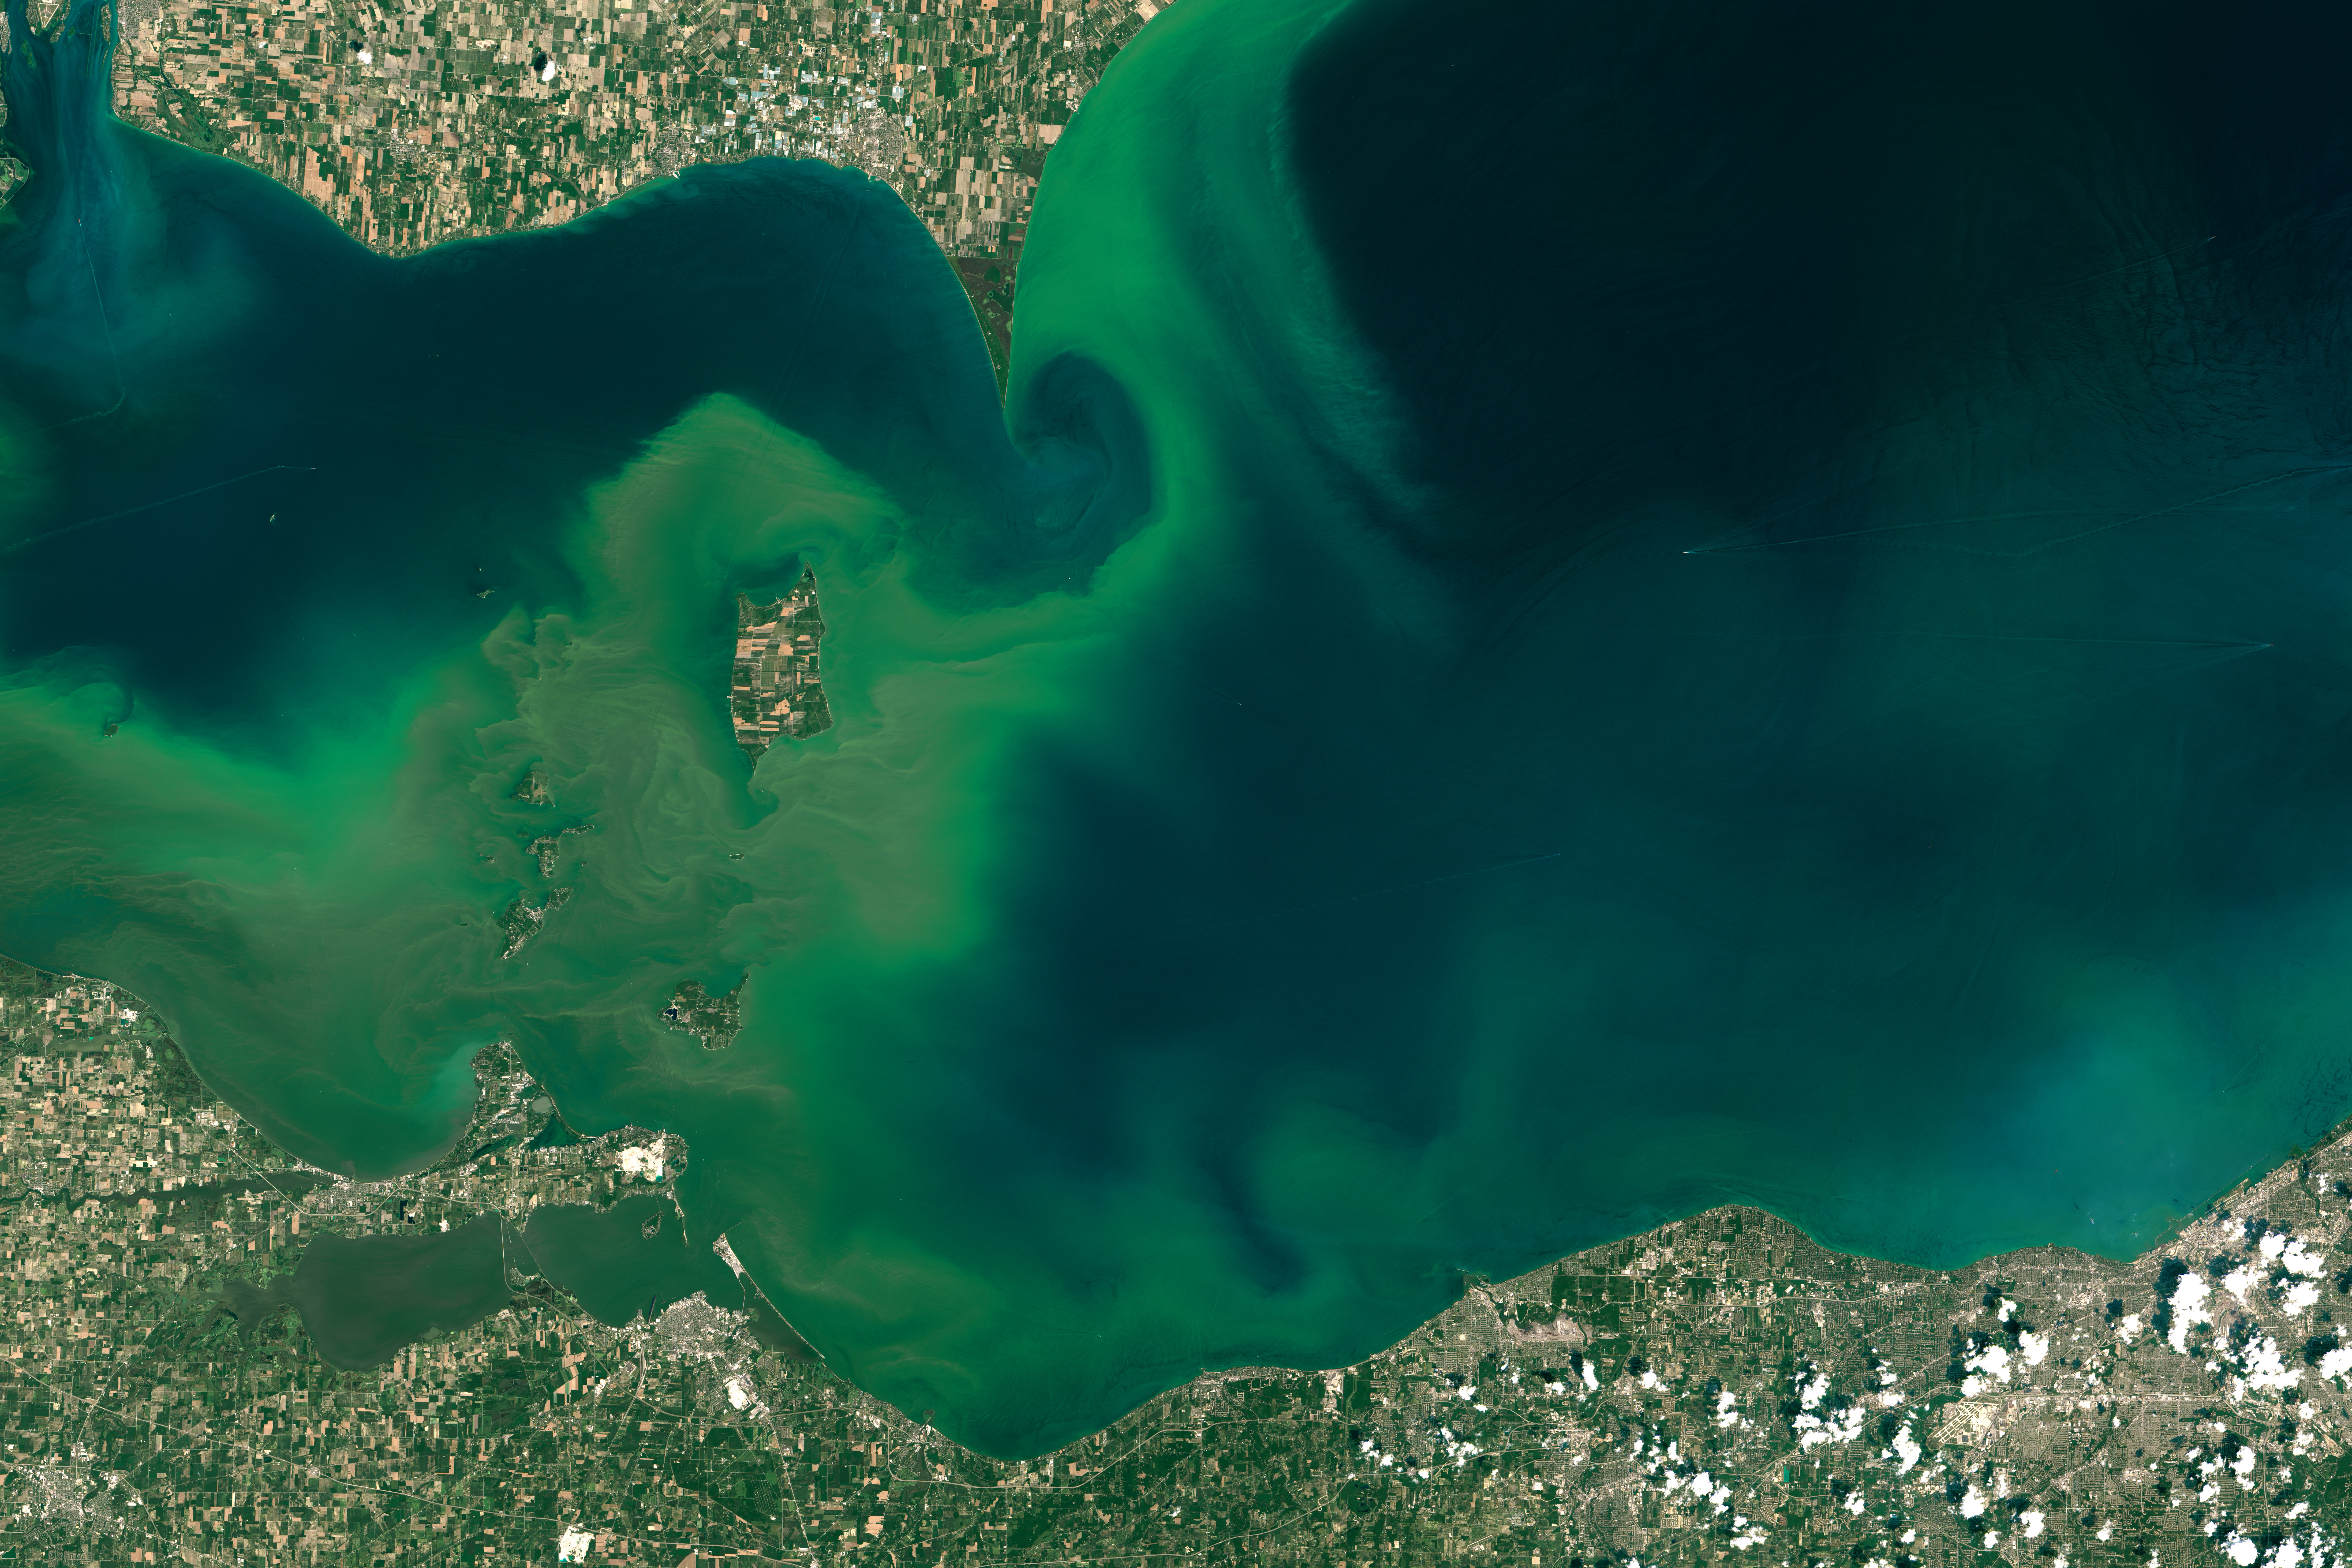 Lake Erie, July 28, 2015. (NASA Earth Observatory image by Joshua Stevens)